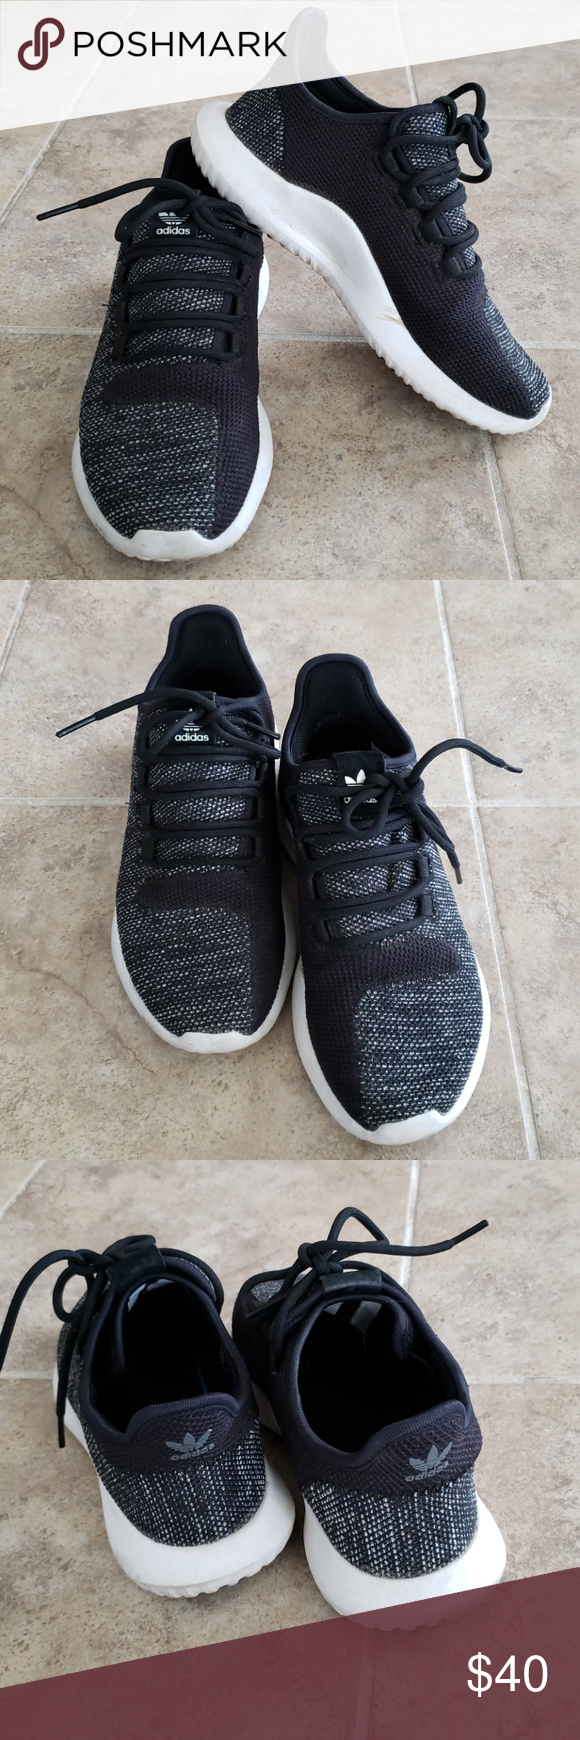 Adidas Tubular in Boy size 5   womens 7 Gently worn Adidas Tubular shoes in Boy  size 5 754c4cb25b